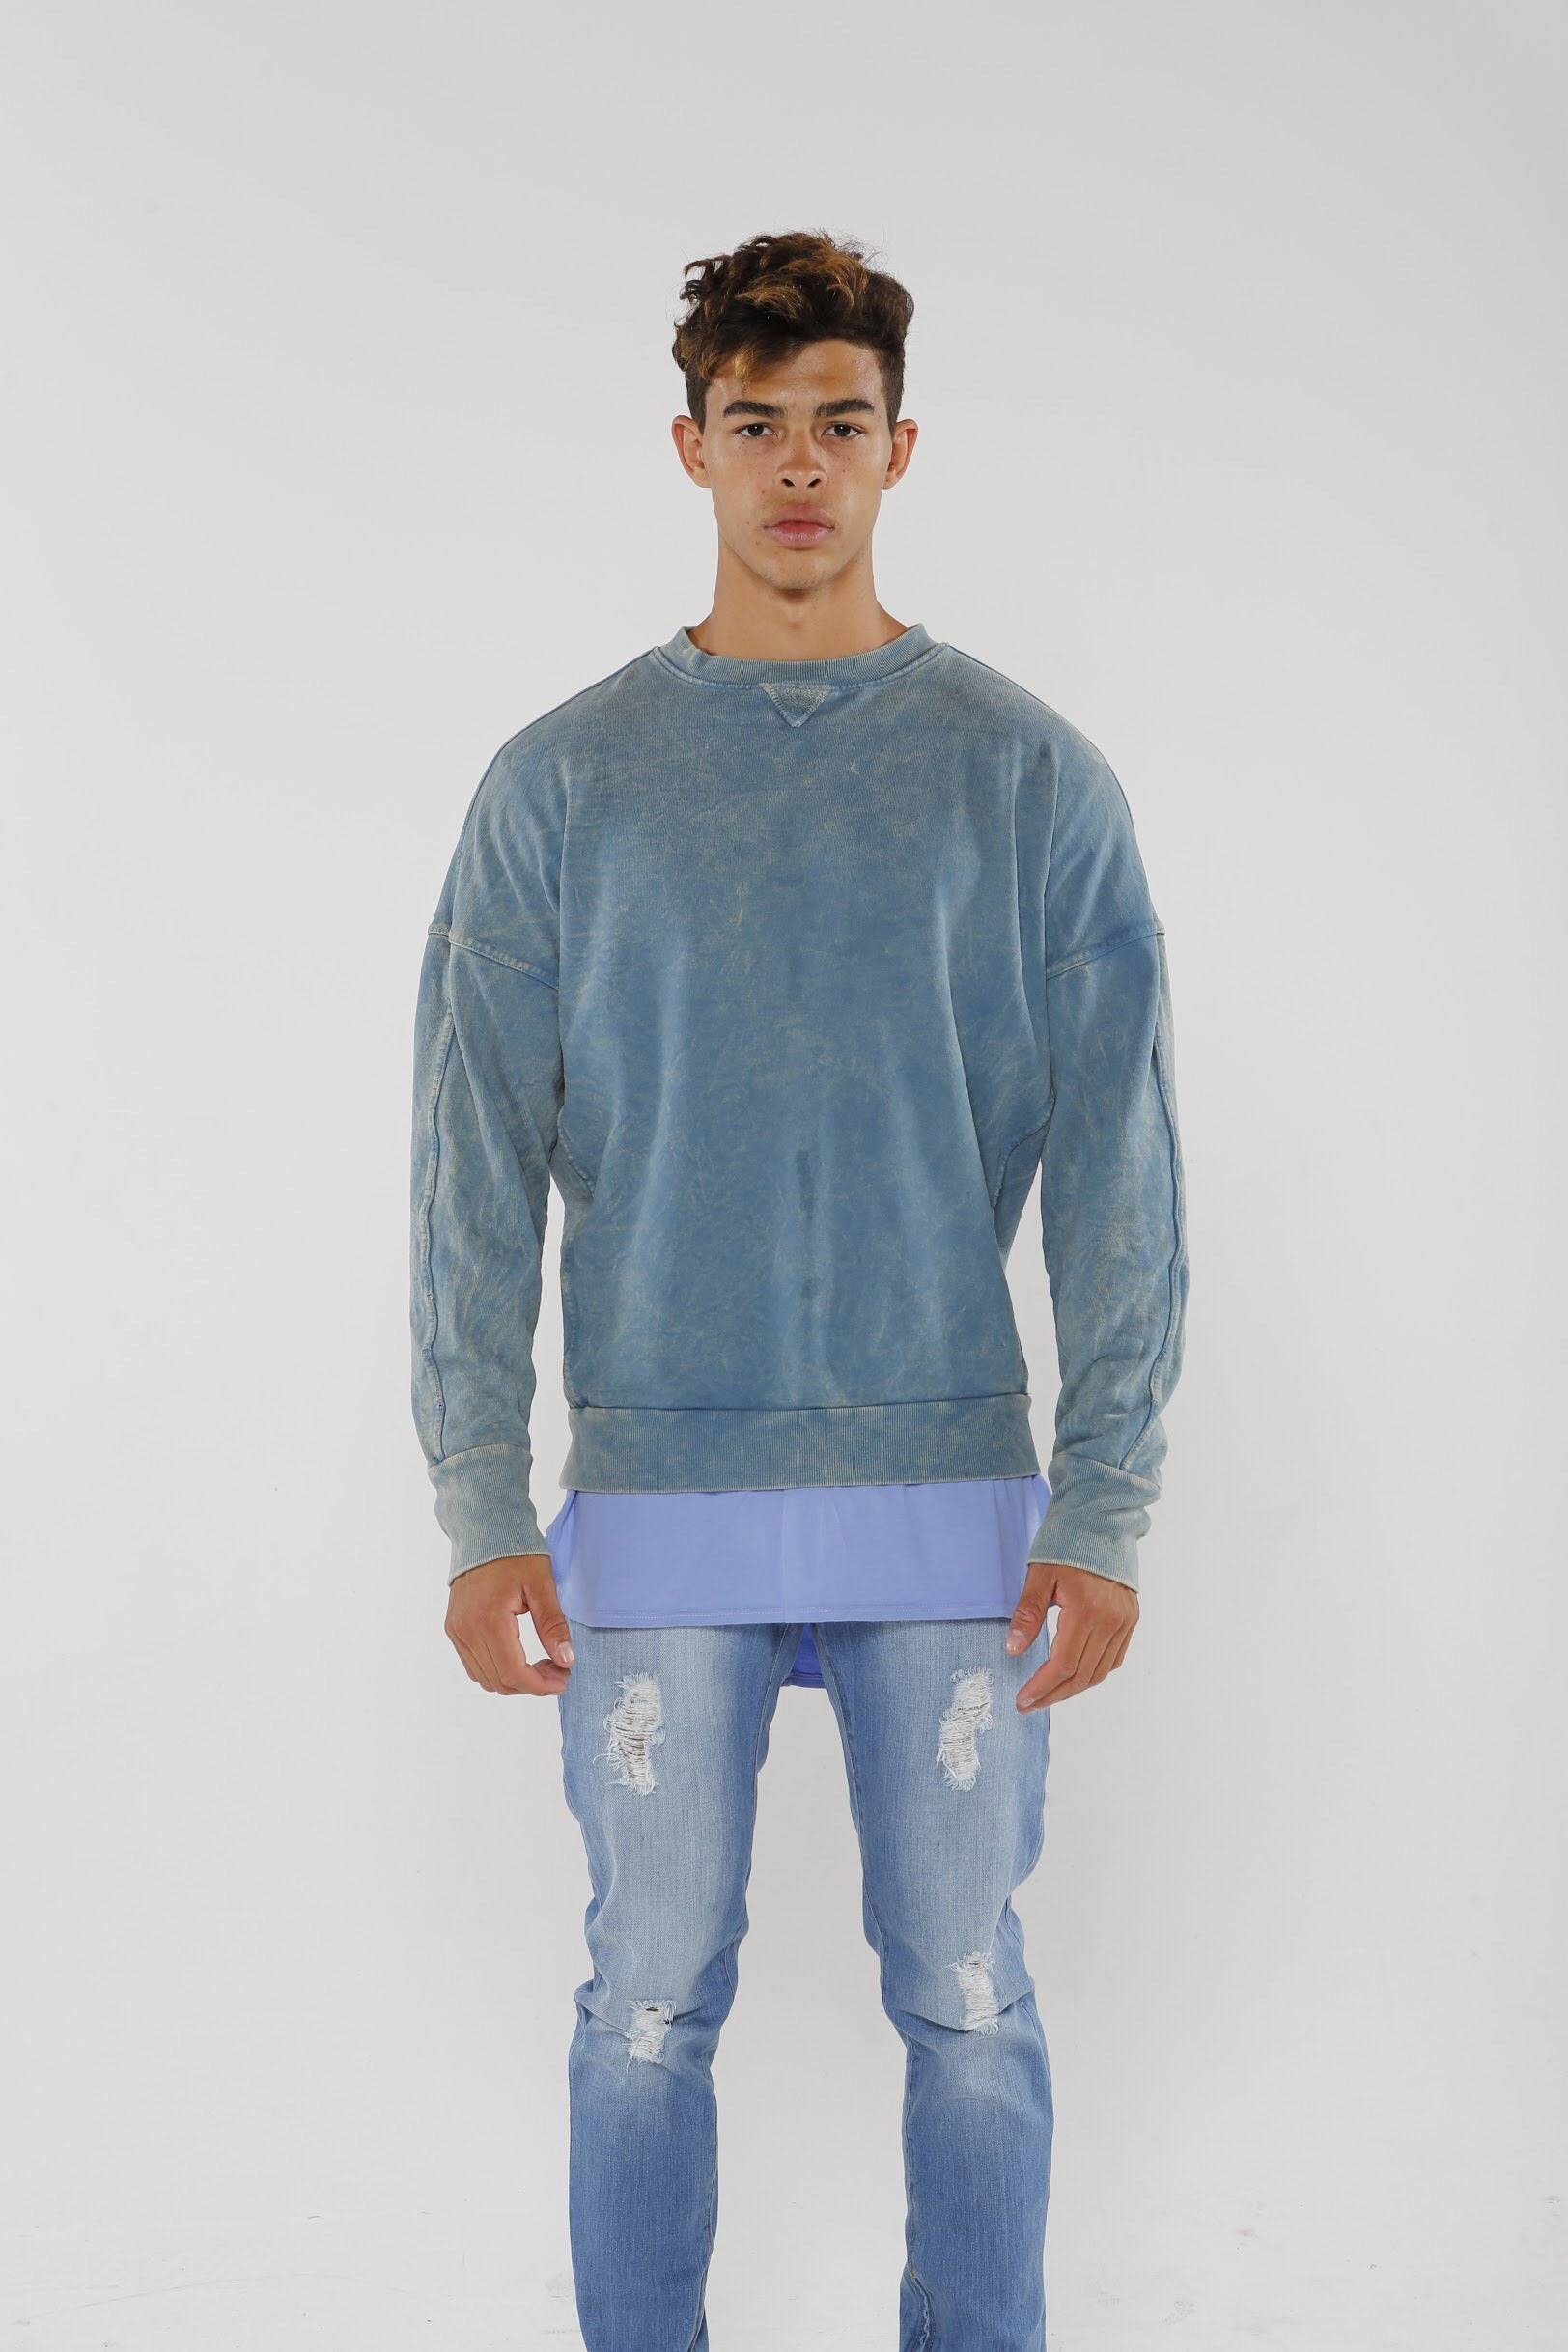 Section Sweater - Faded Blue - Golden Aesthetics